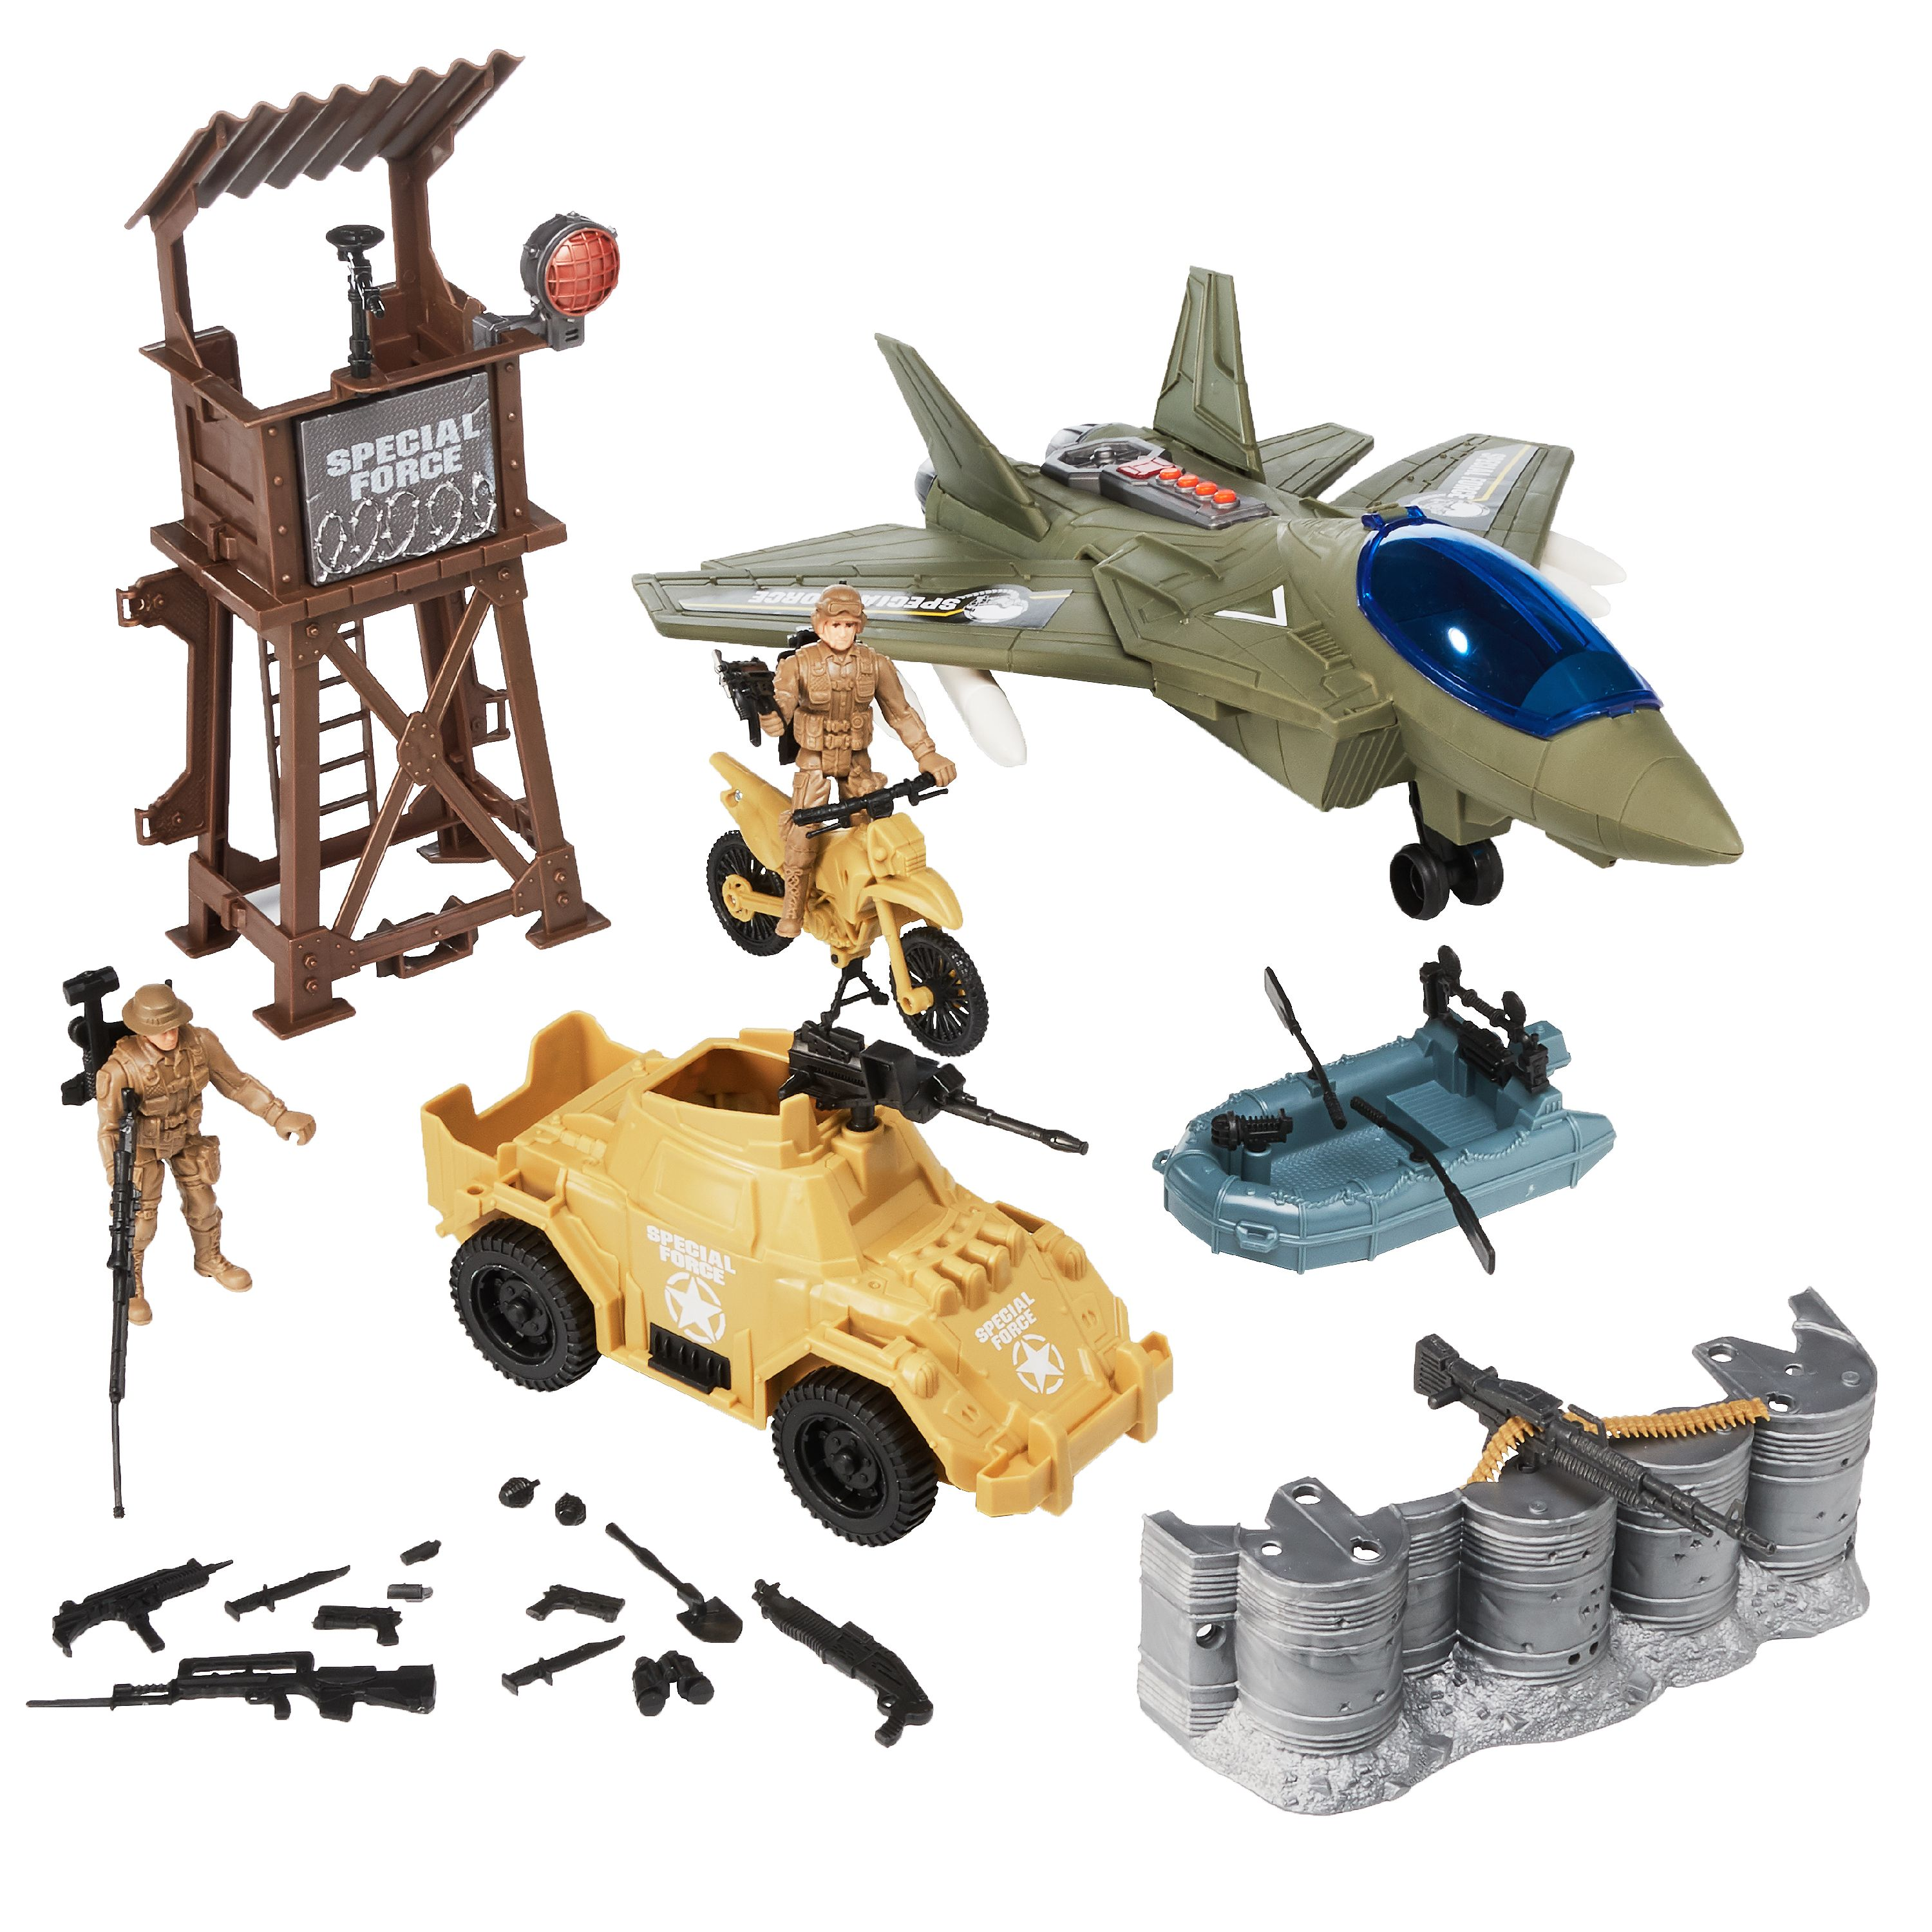 Kid Connection Military Plane Play Set, 34 Pieces